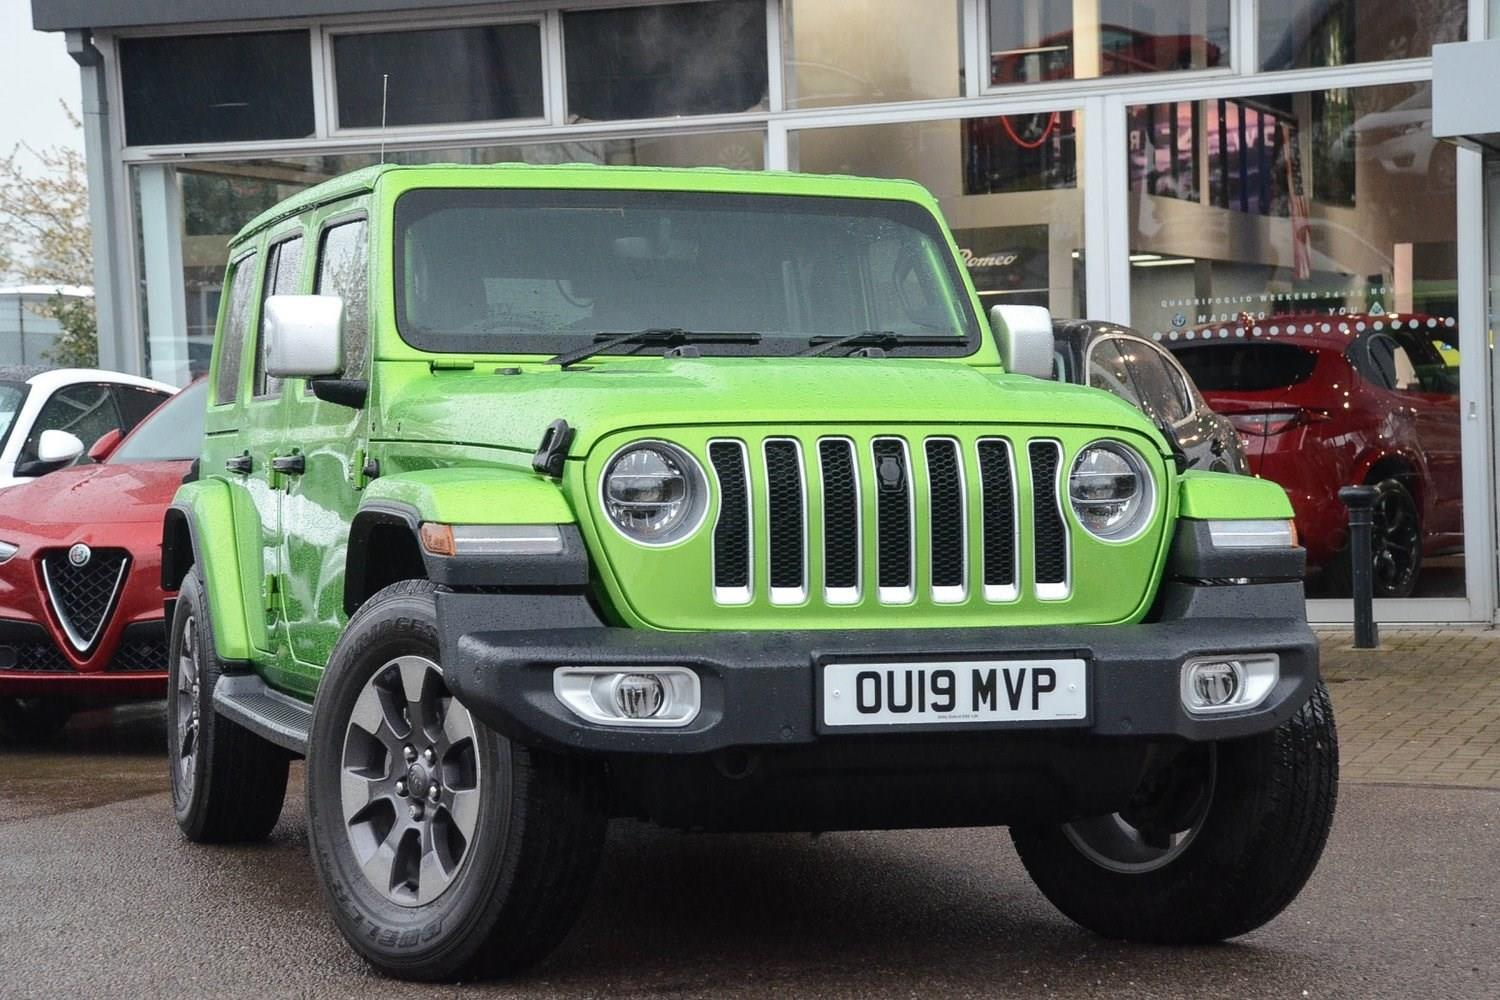 Jeep Wrangler 2.0 GME (272bhp) 4X4 Overland Estate Petrol Mojito Clearcoat Metallic